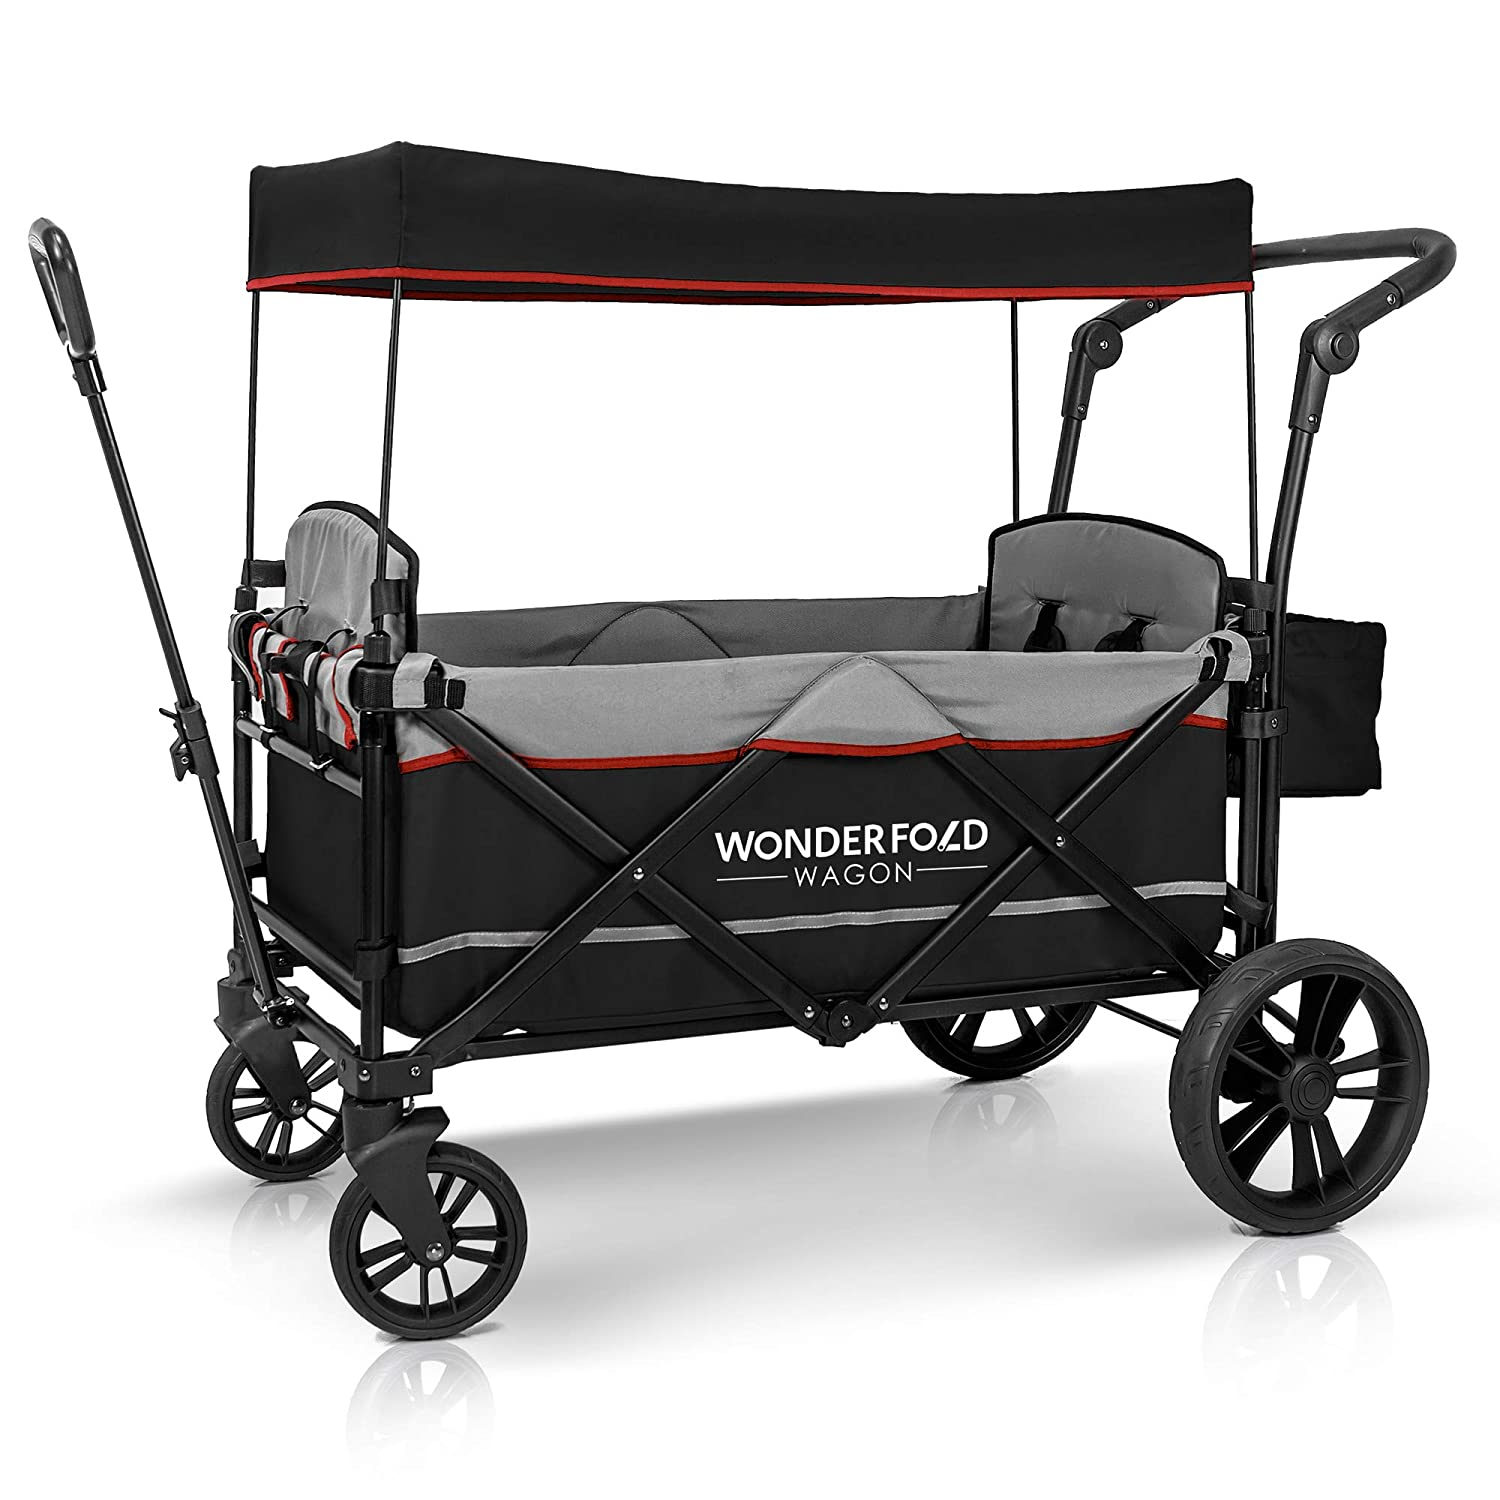 WonderFold Baby XL 2 Passenger Push Pull Twin Double Stroller Wagon with Adjustable Handle Bar, Removable Canopy, Safety Seats with 5-Point Harness, Safety Reflective Strip (Black)